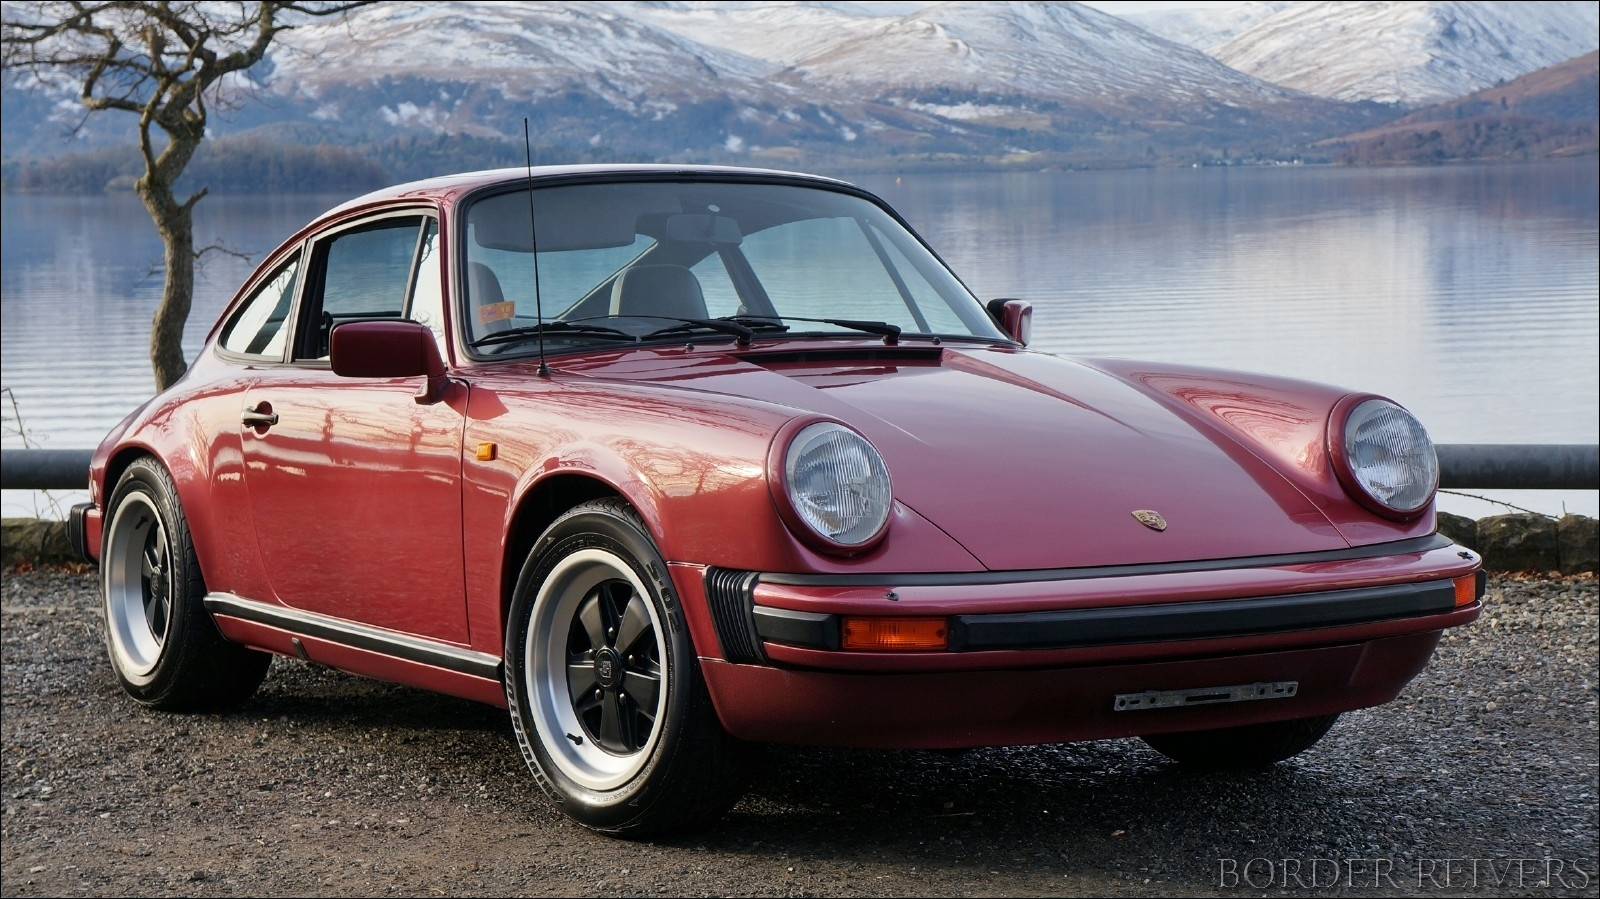 porsche 911sc 1980 new stock border reiversborder reivers. Black Bedroom Furniture Sets. Home Design Ideas